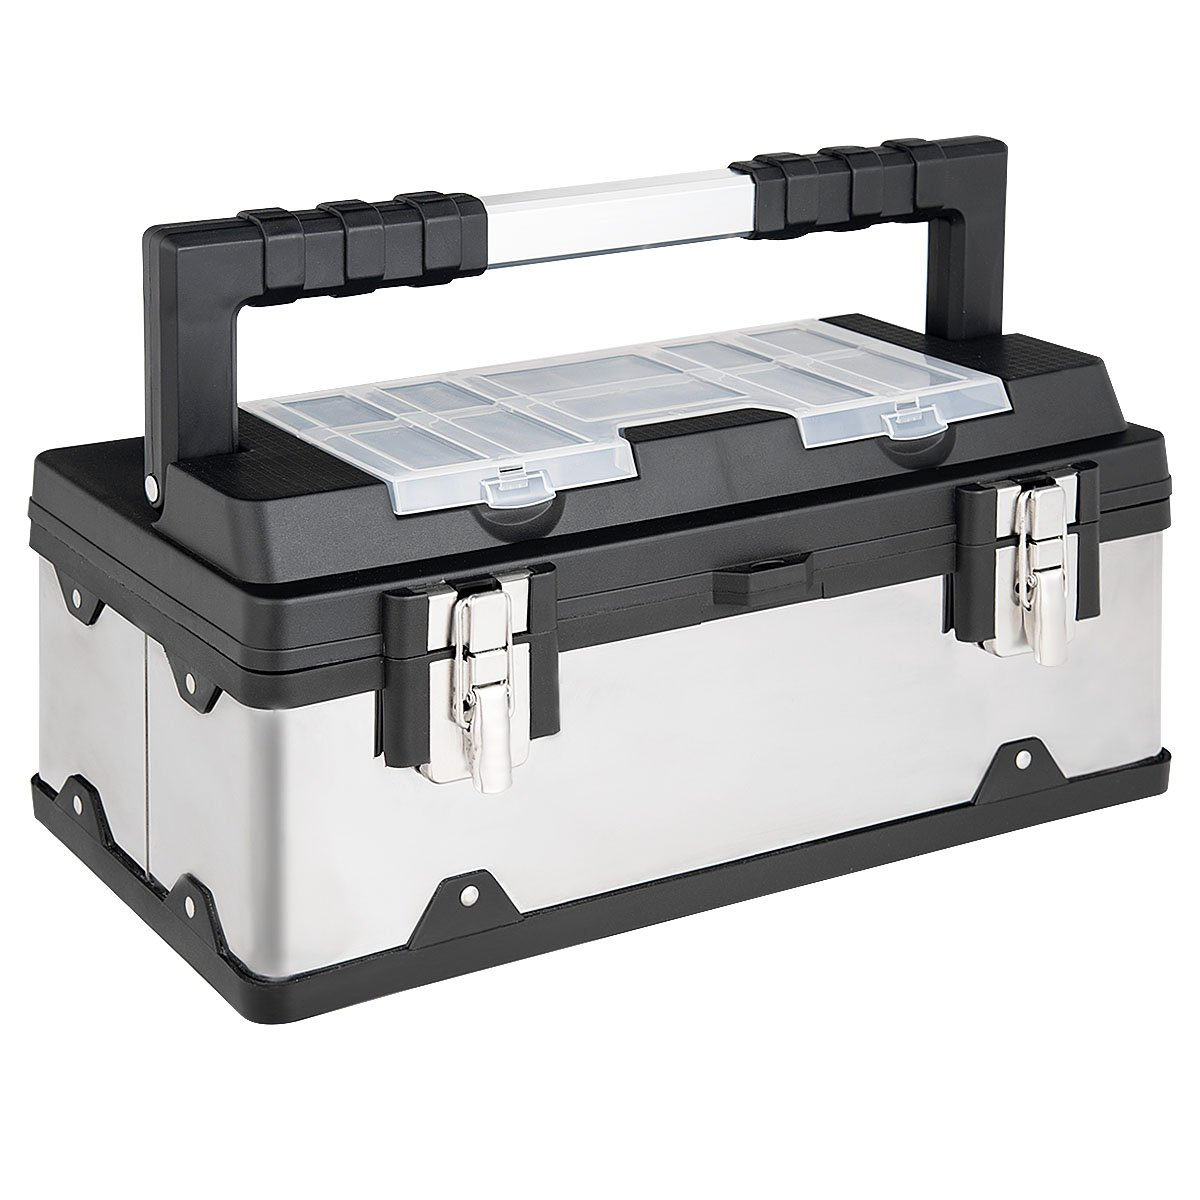 Goplus Portable Tool Box 19In Toolbox Lockable Cabinet Tool Storage Box Stainless Steel Organizer with Multiple Compartments, Handle Essential Tool Kit for Home Garage (19-in) by Goplus